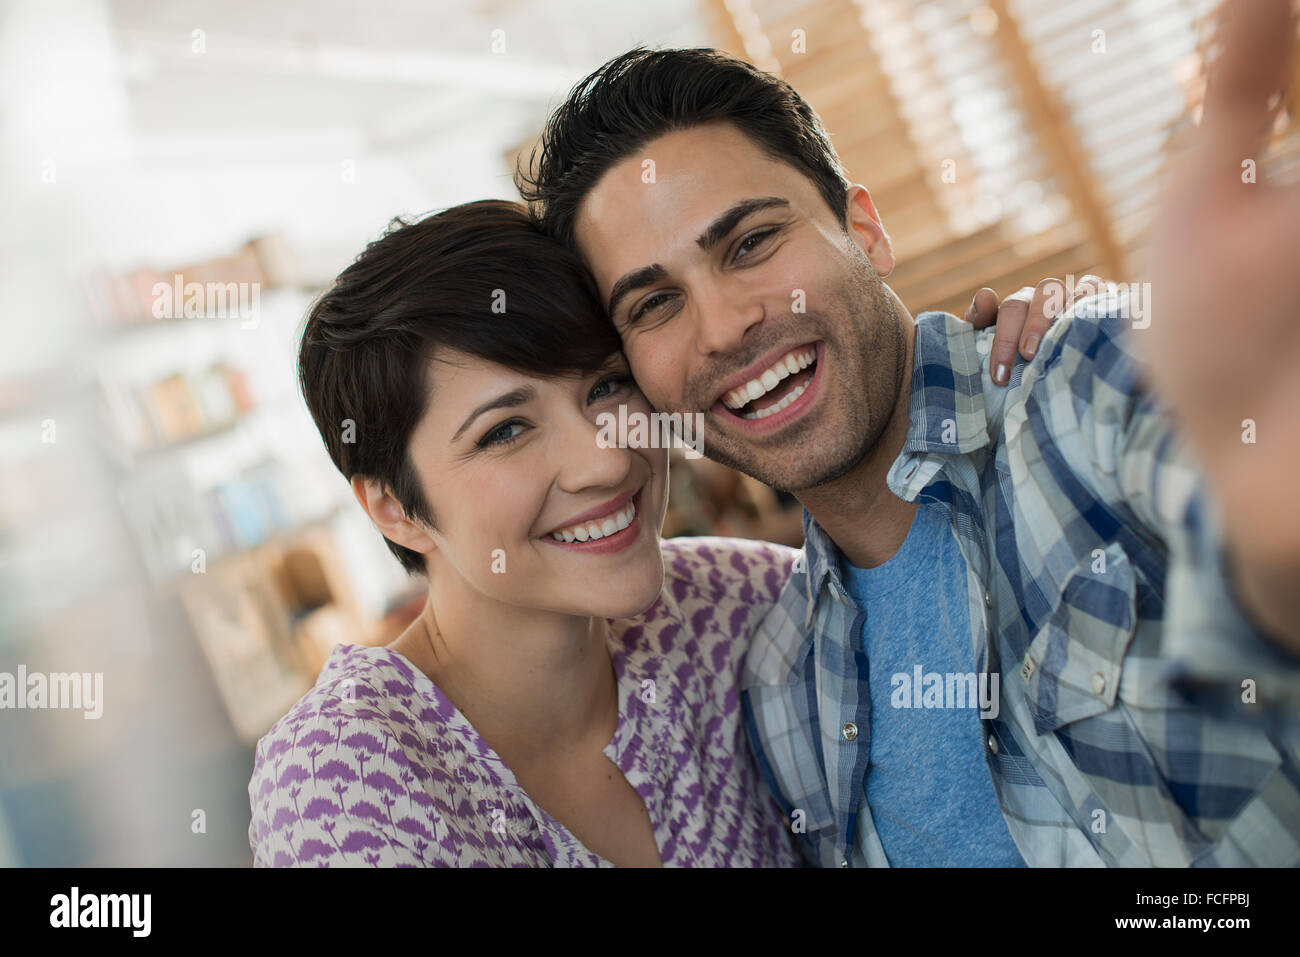 A couple, man and woman posing for a selfy. - Stock Image